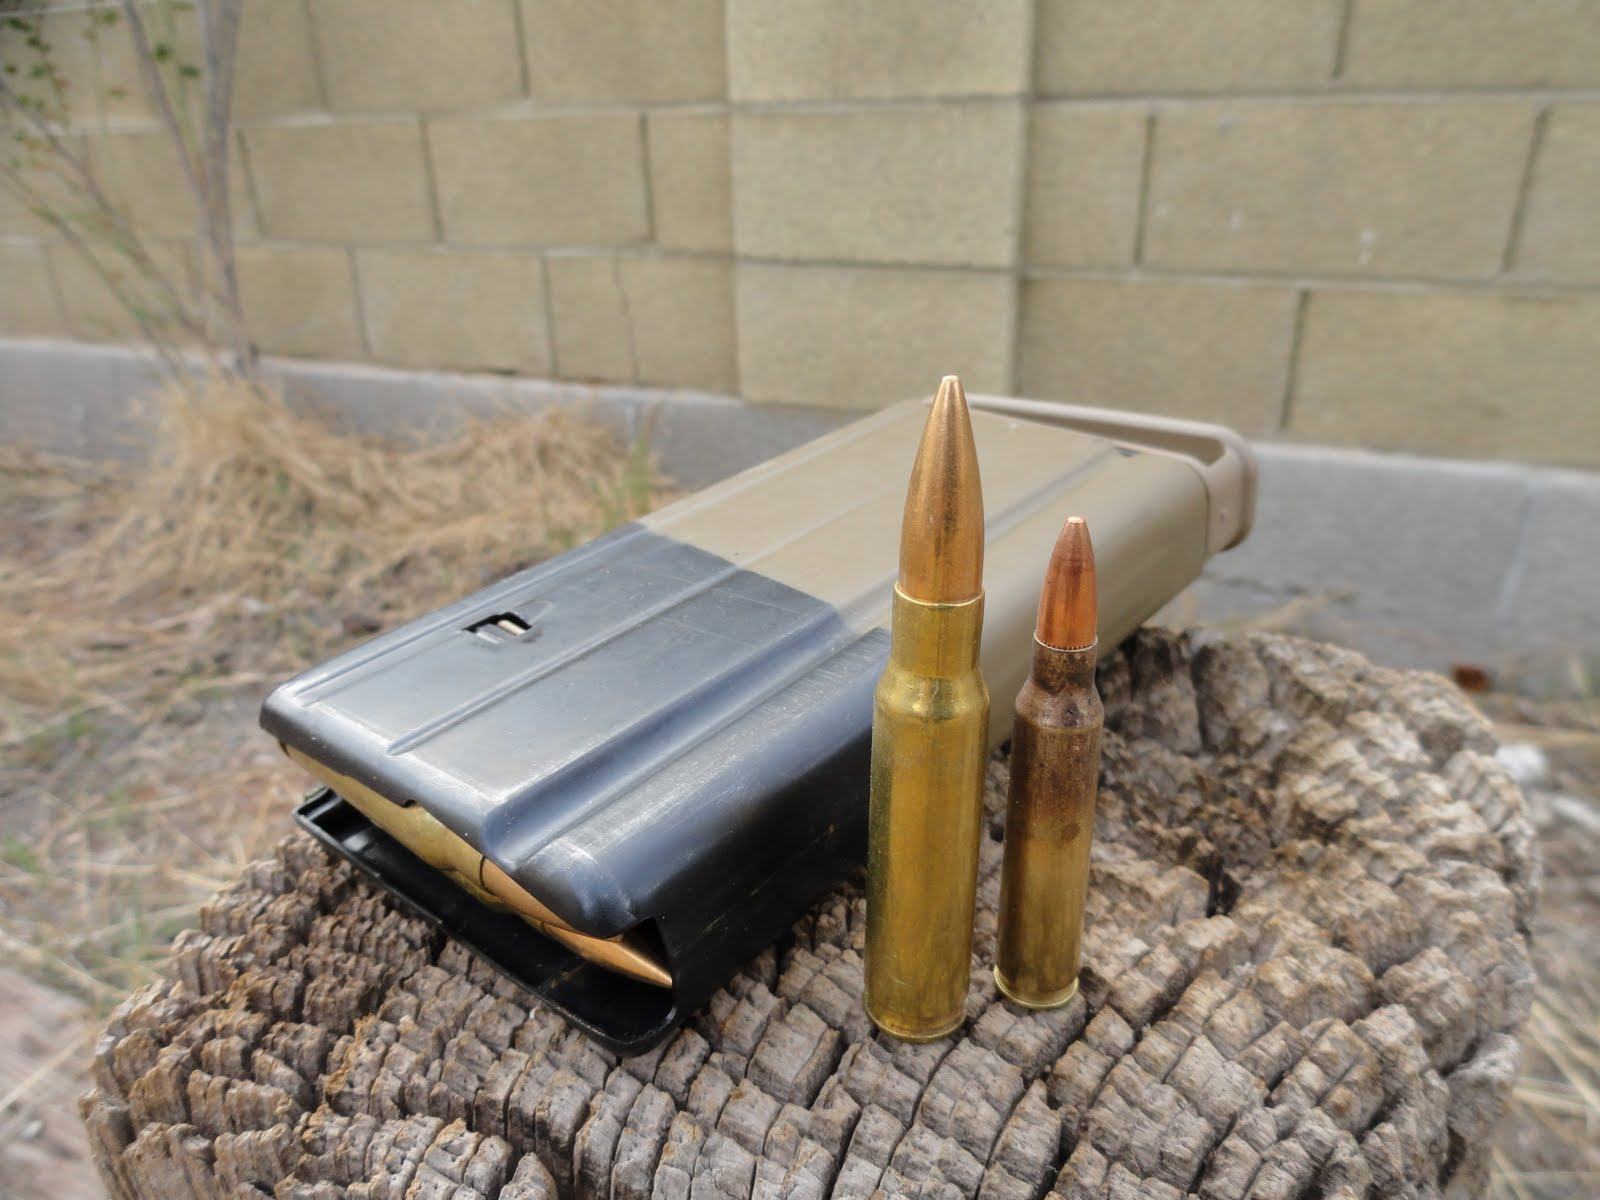 308 vs 223 Ammo Cost http://createtwodestroy.blogspot.com/2011/01/shook-guns-part-5.html